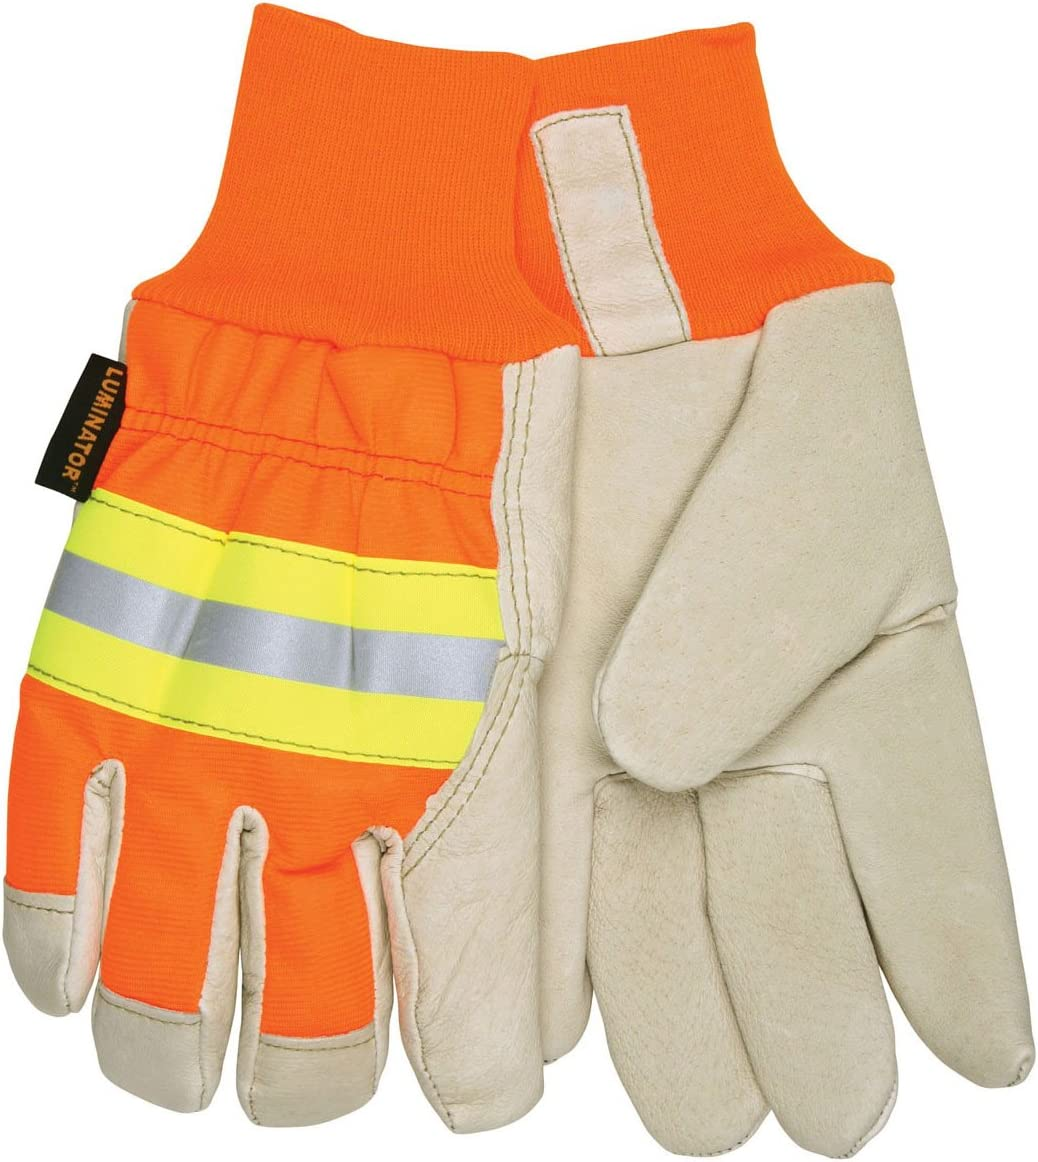 MCR Safety 3440L Luminator Grain Pigskin Thermosock Lining Driver Men's Gloves with Wing Thumb, Cream/Orange, Large, 1-Pair